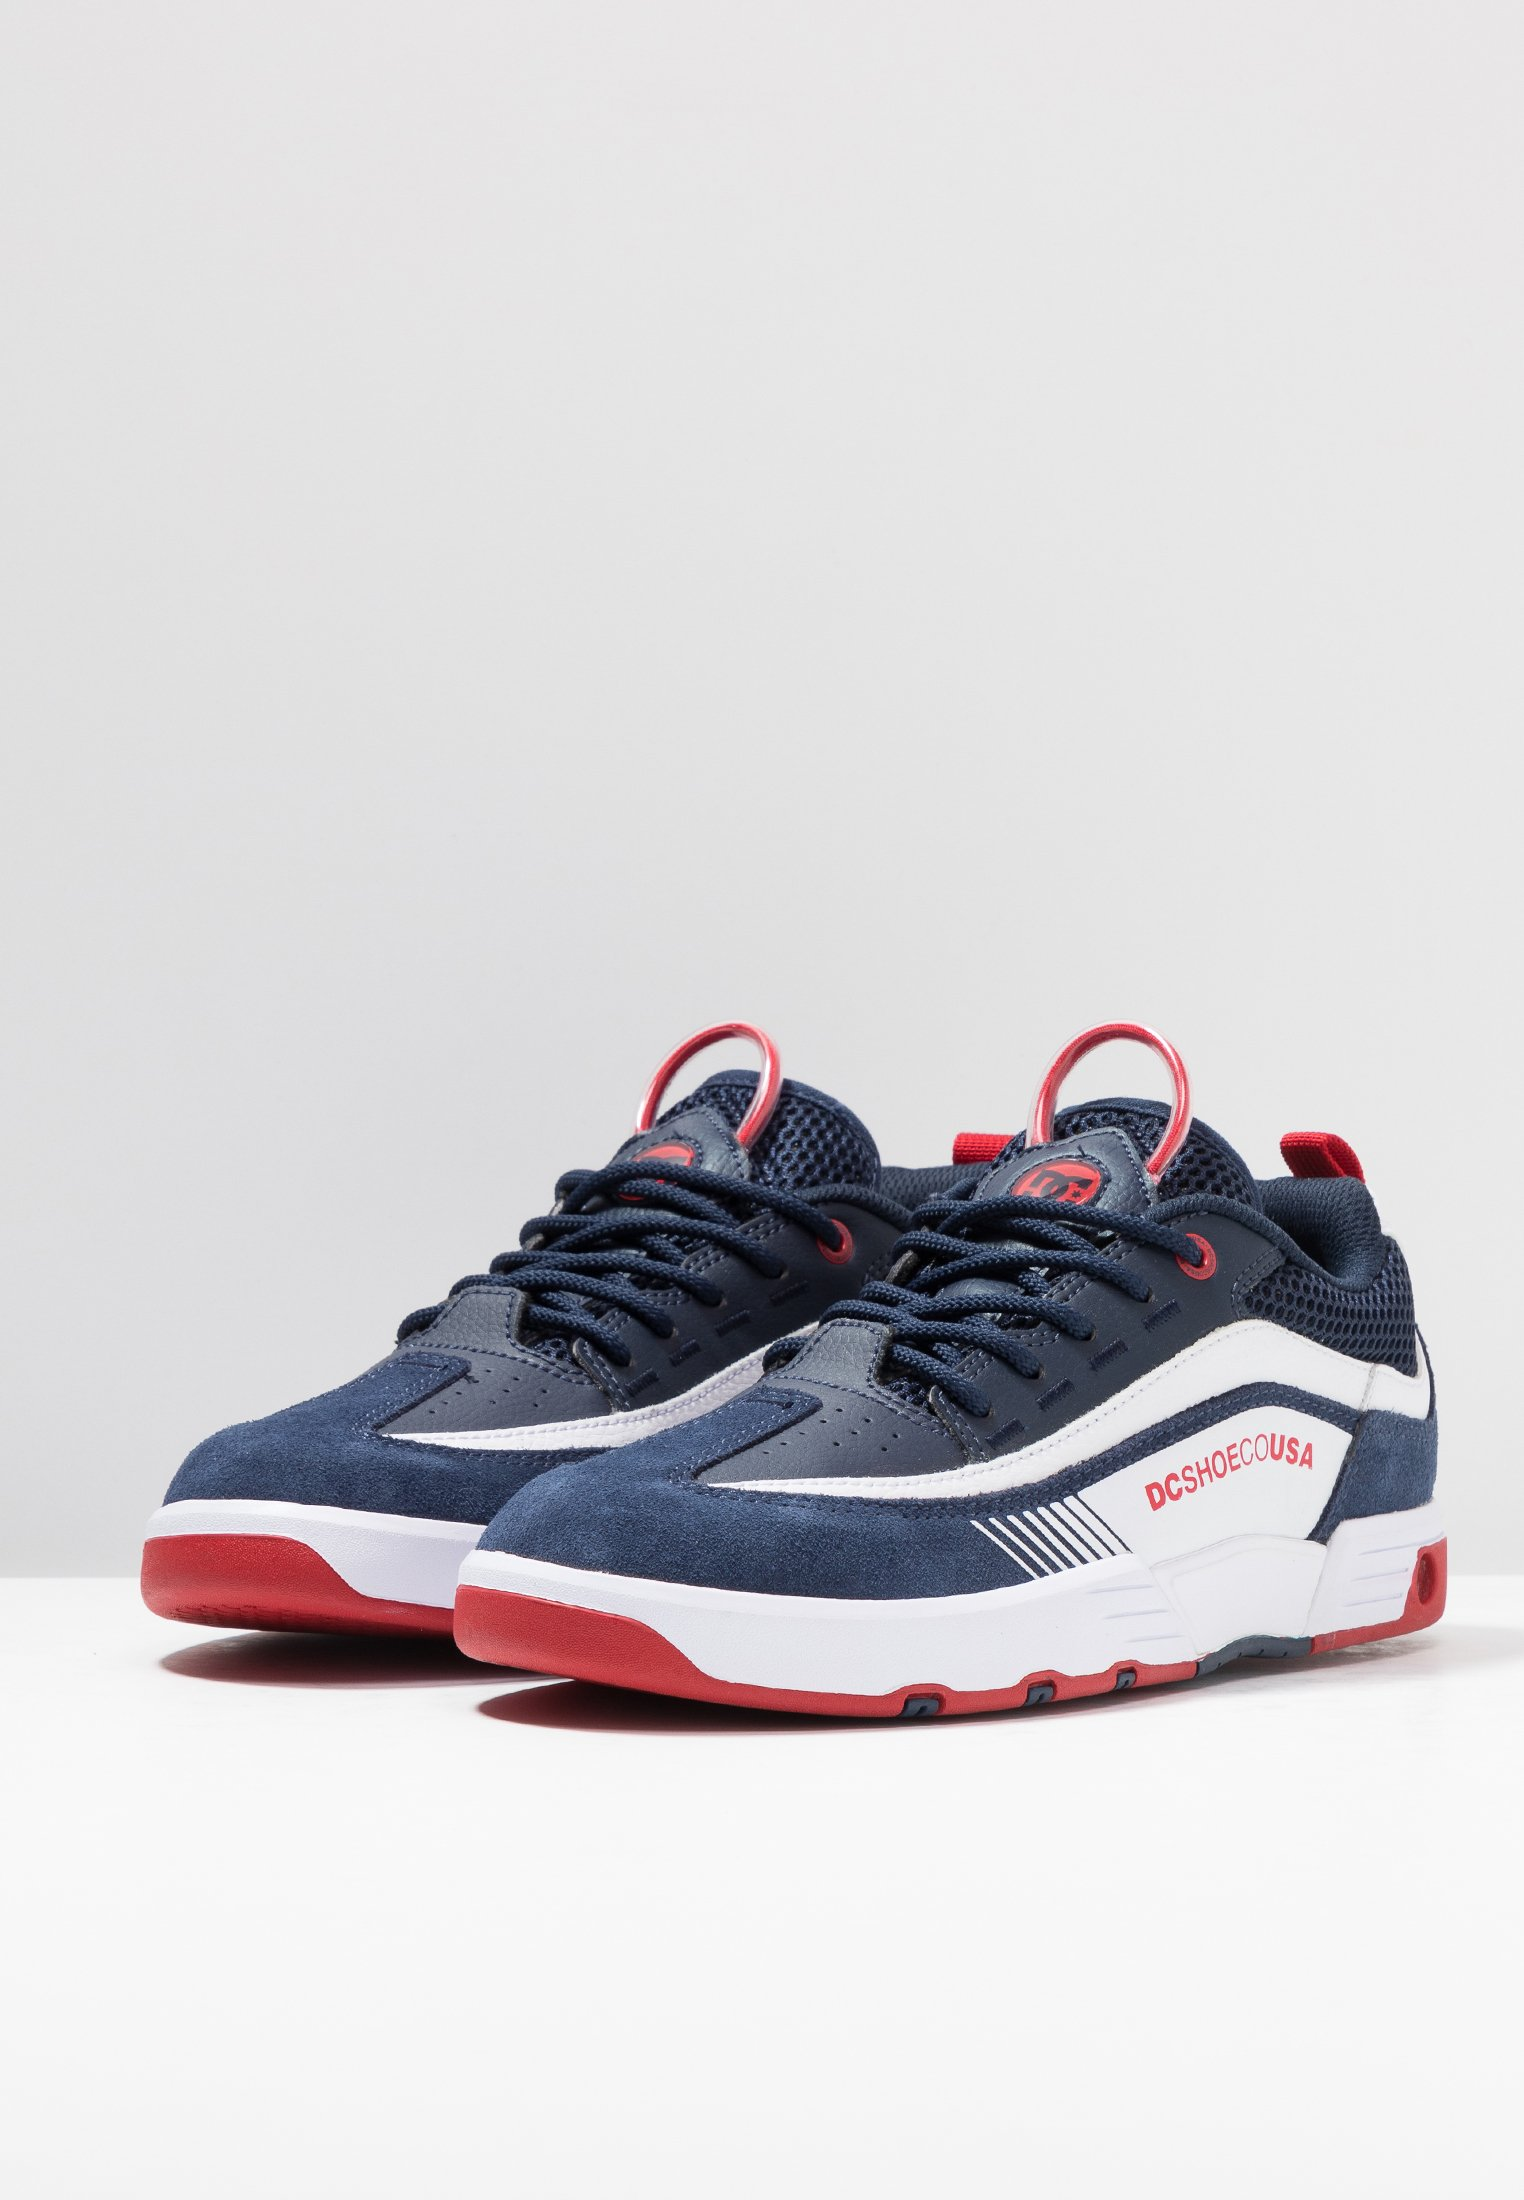 Dc Shoes Legacy 98 Slim - Chaussures De Skate Navy/red